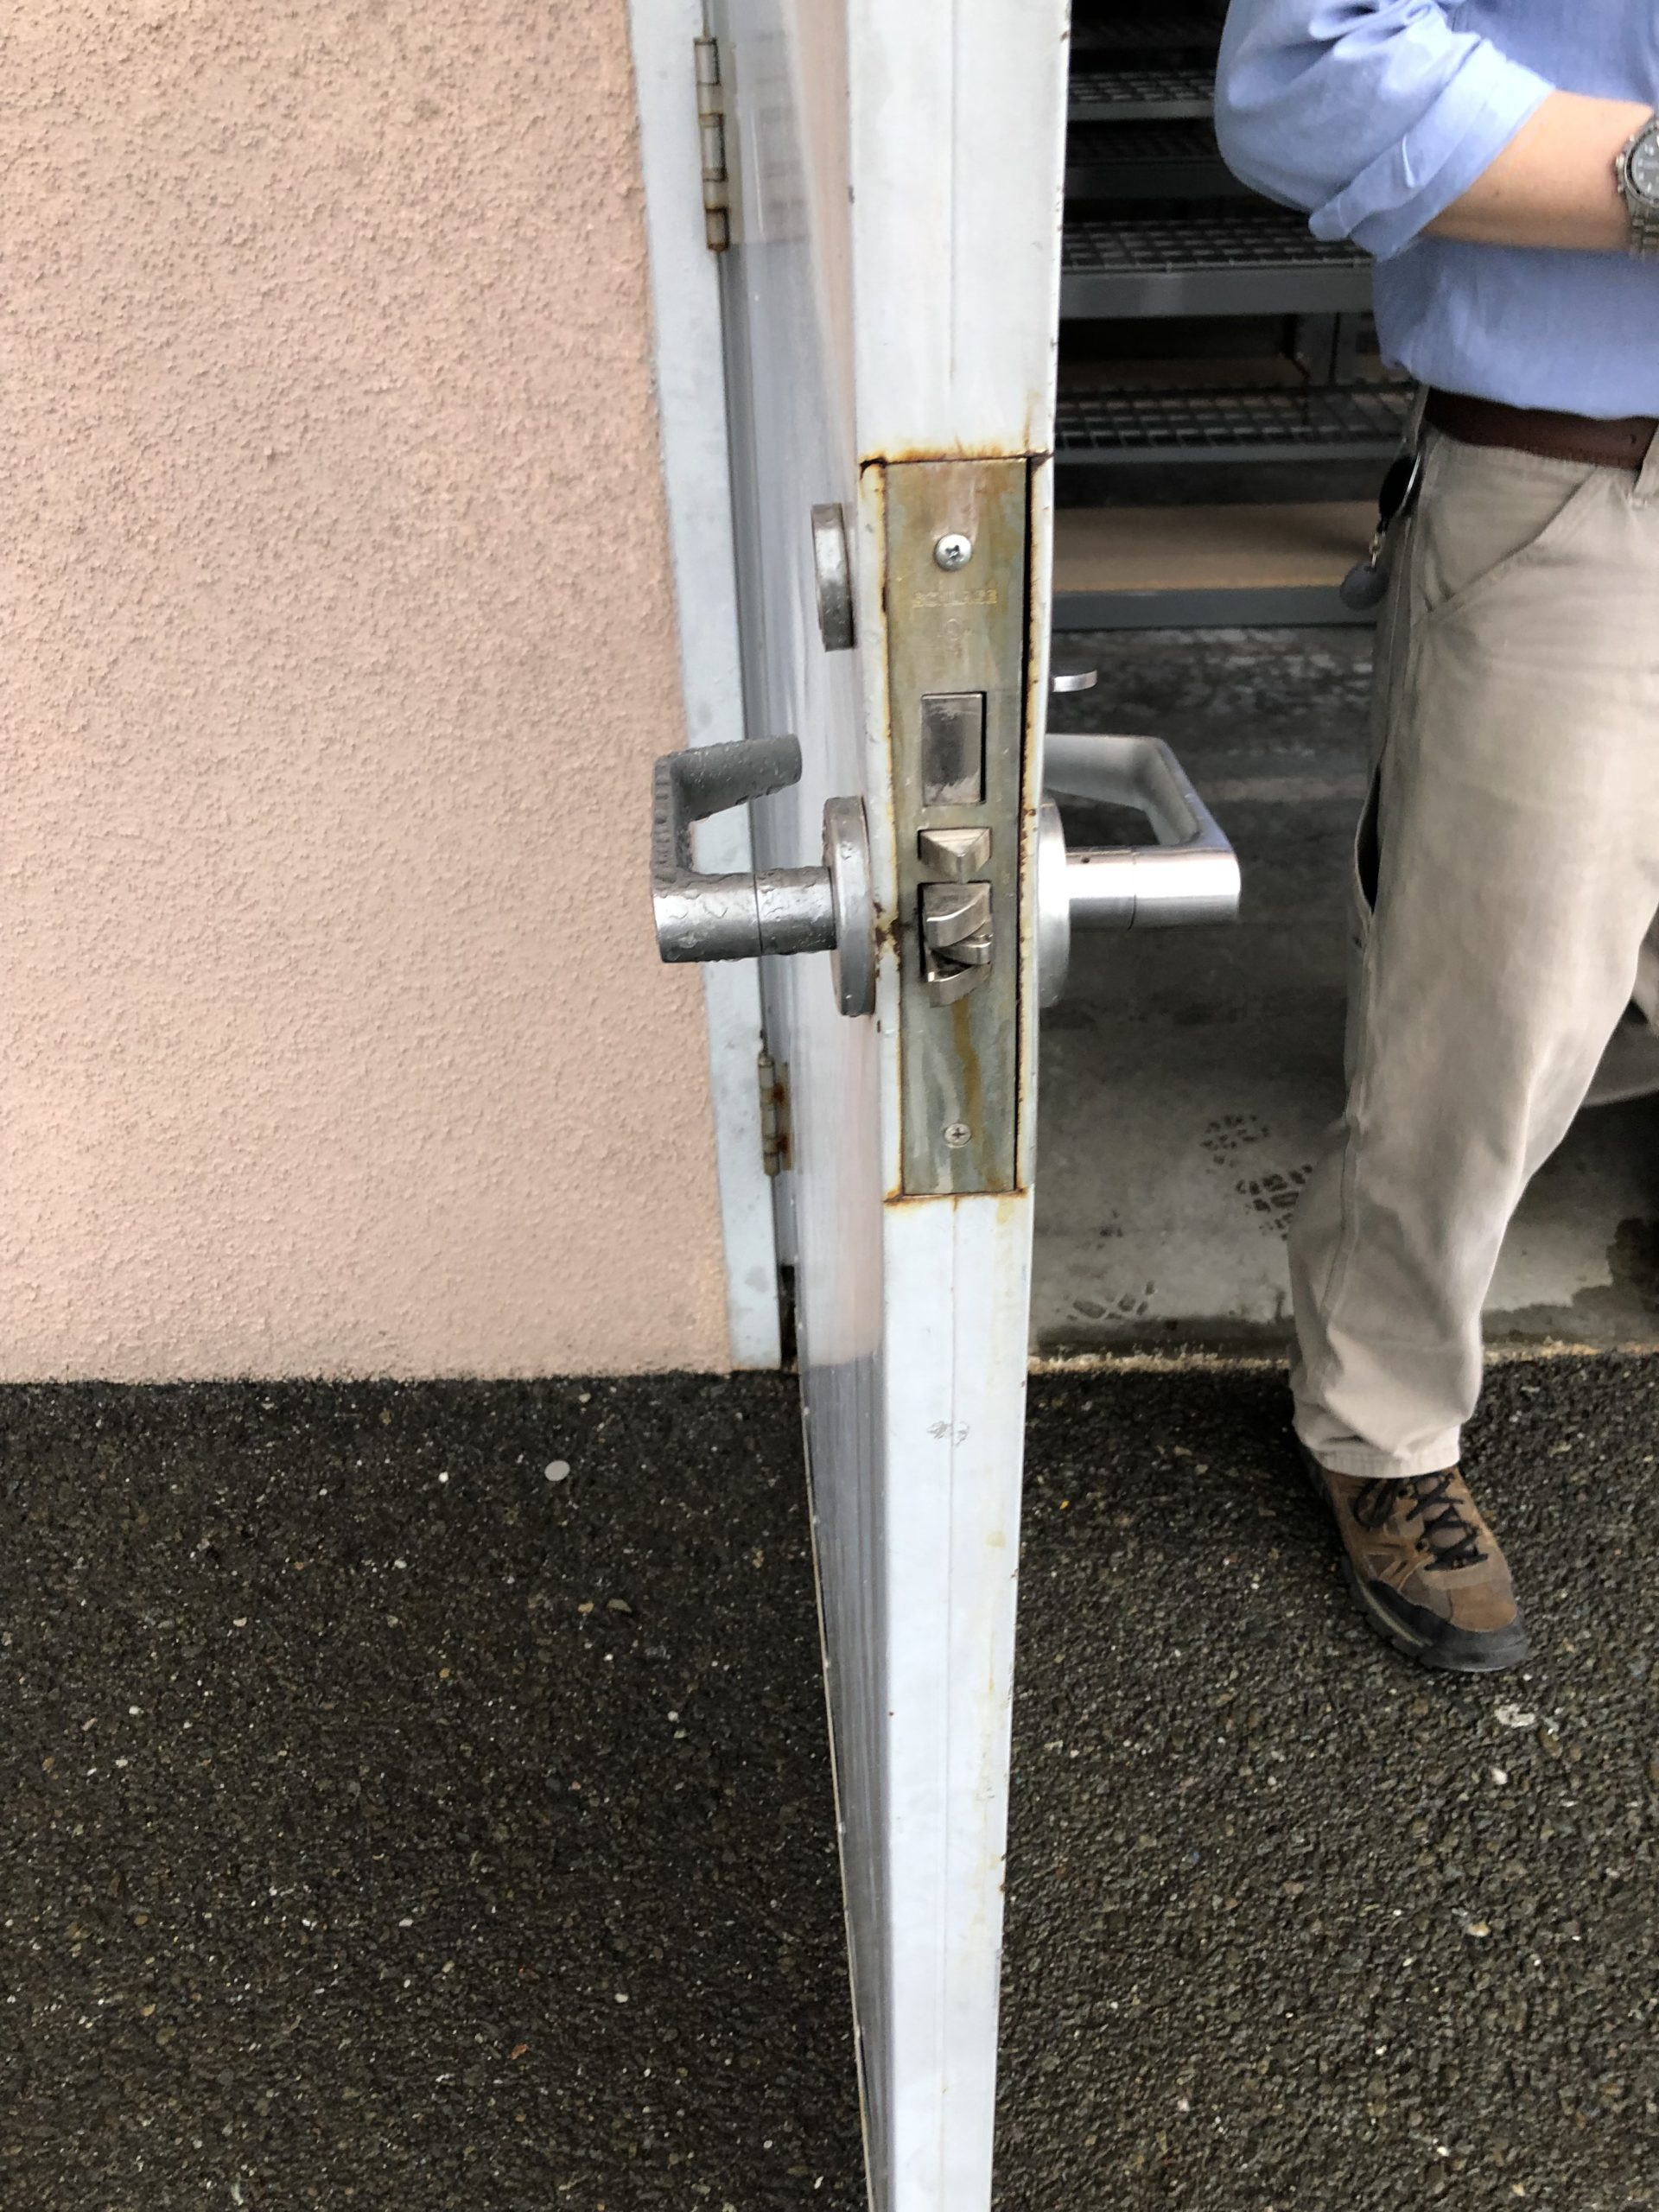 commercial lock being replaced on exterior door behind the building